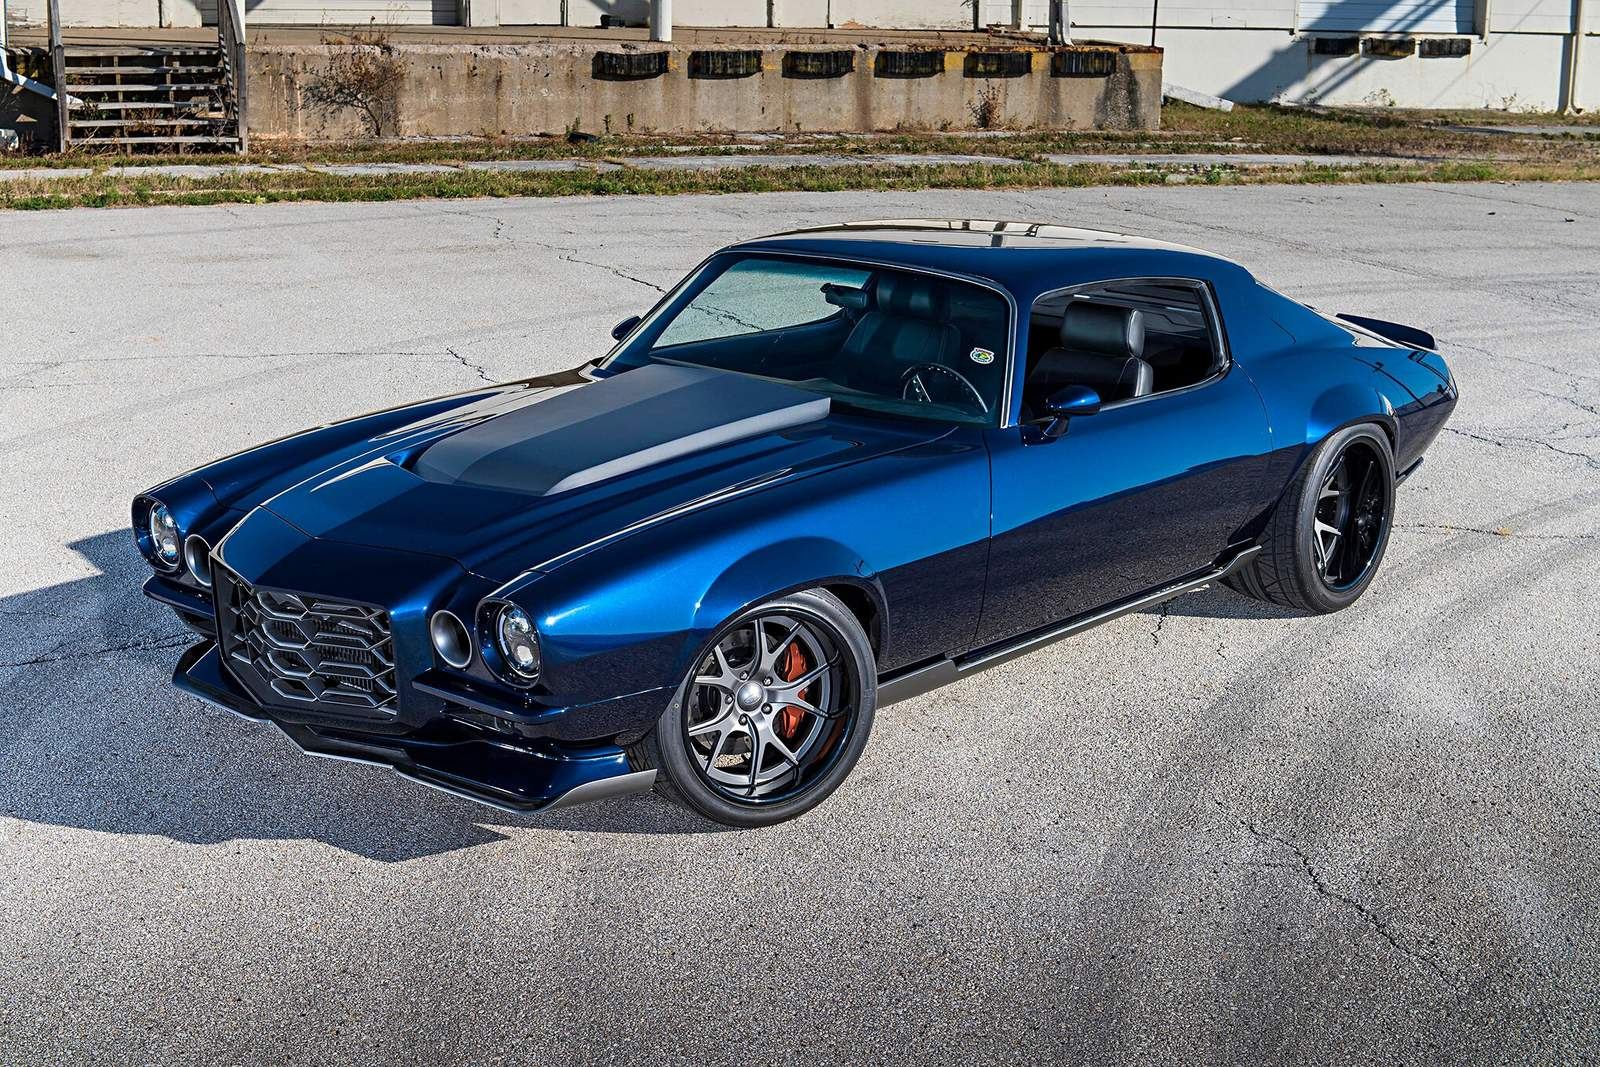 https://s3.amazonaws.com/uploads.bmxmuseum.com/user-images/214141/001-1971-camaro-twin-turbo-pro-touring-ls5de6a6bf37.jpg